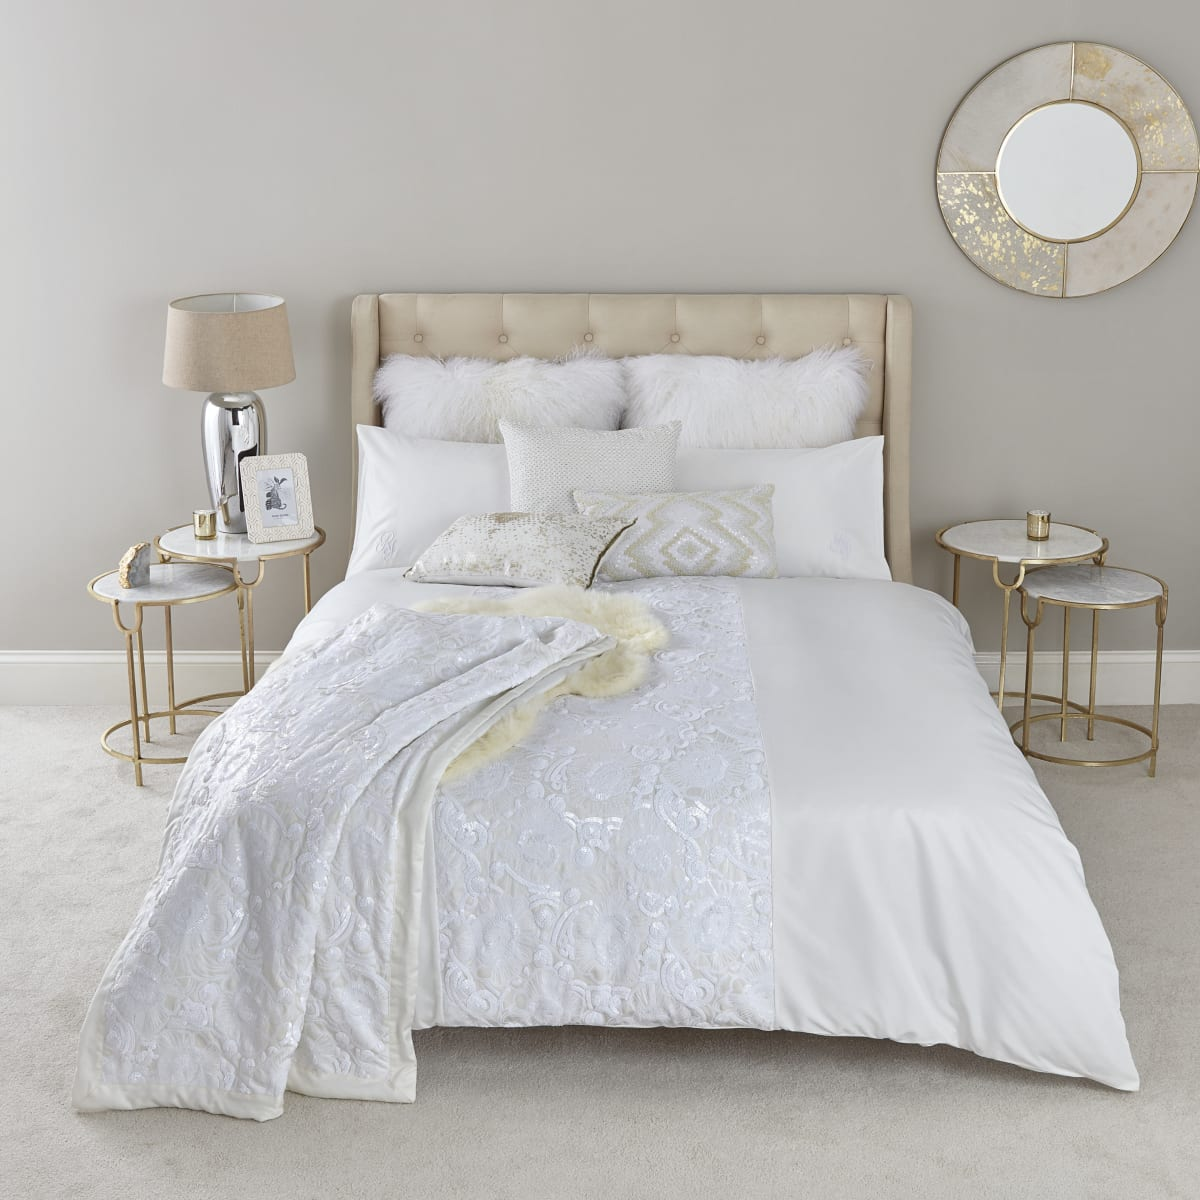 Kingsize-Bettdecken-Set in Creme mit Pailletten